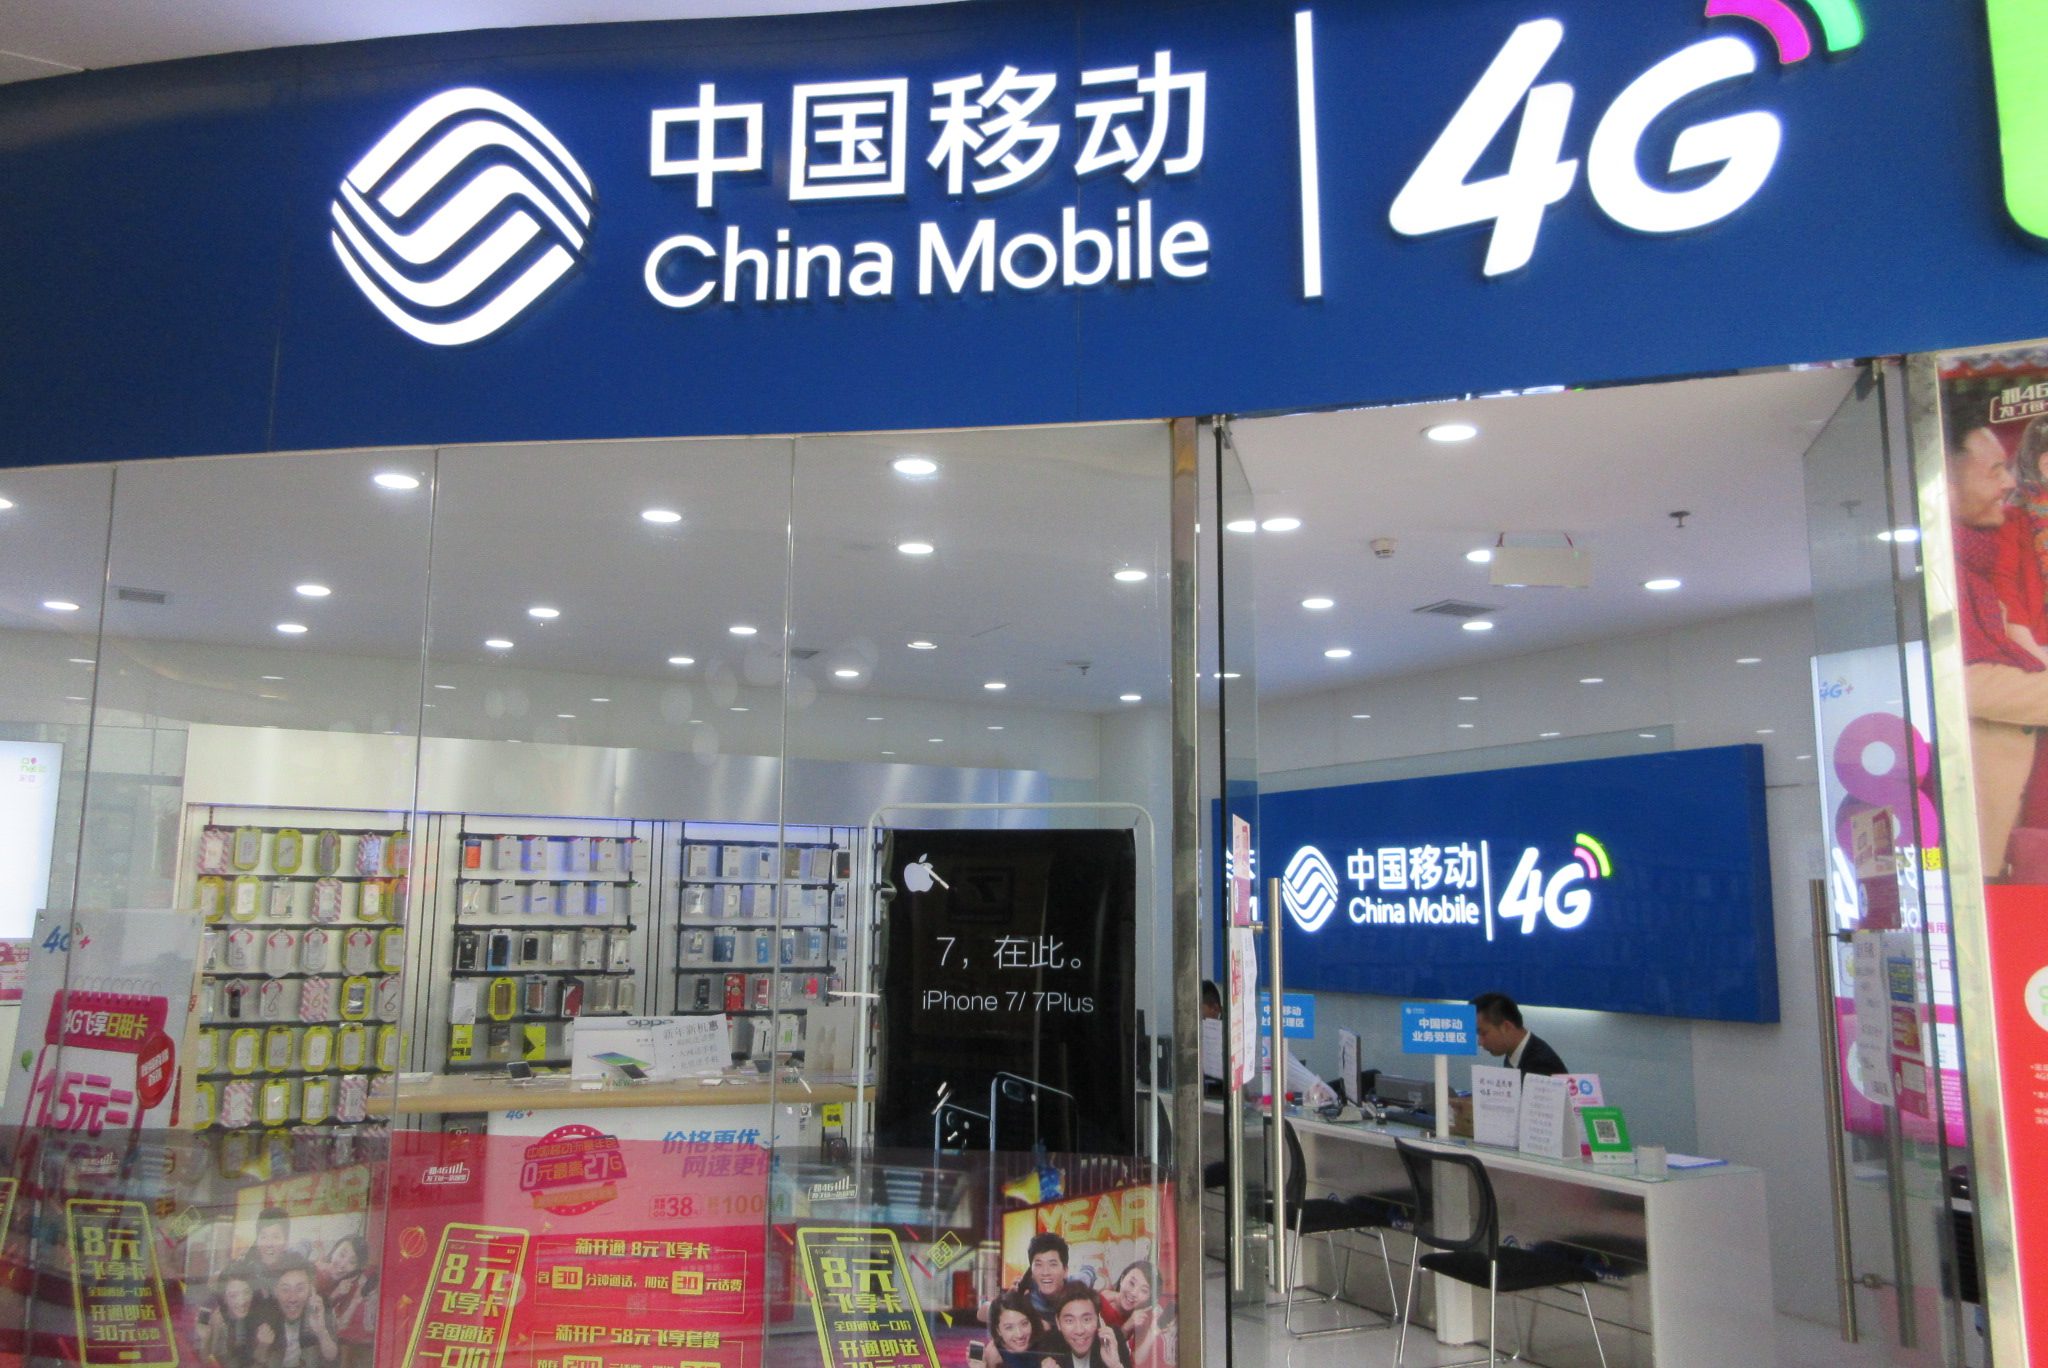 Rejection from FCC Looms Over China Mobile's U.S. Business